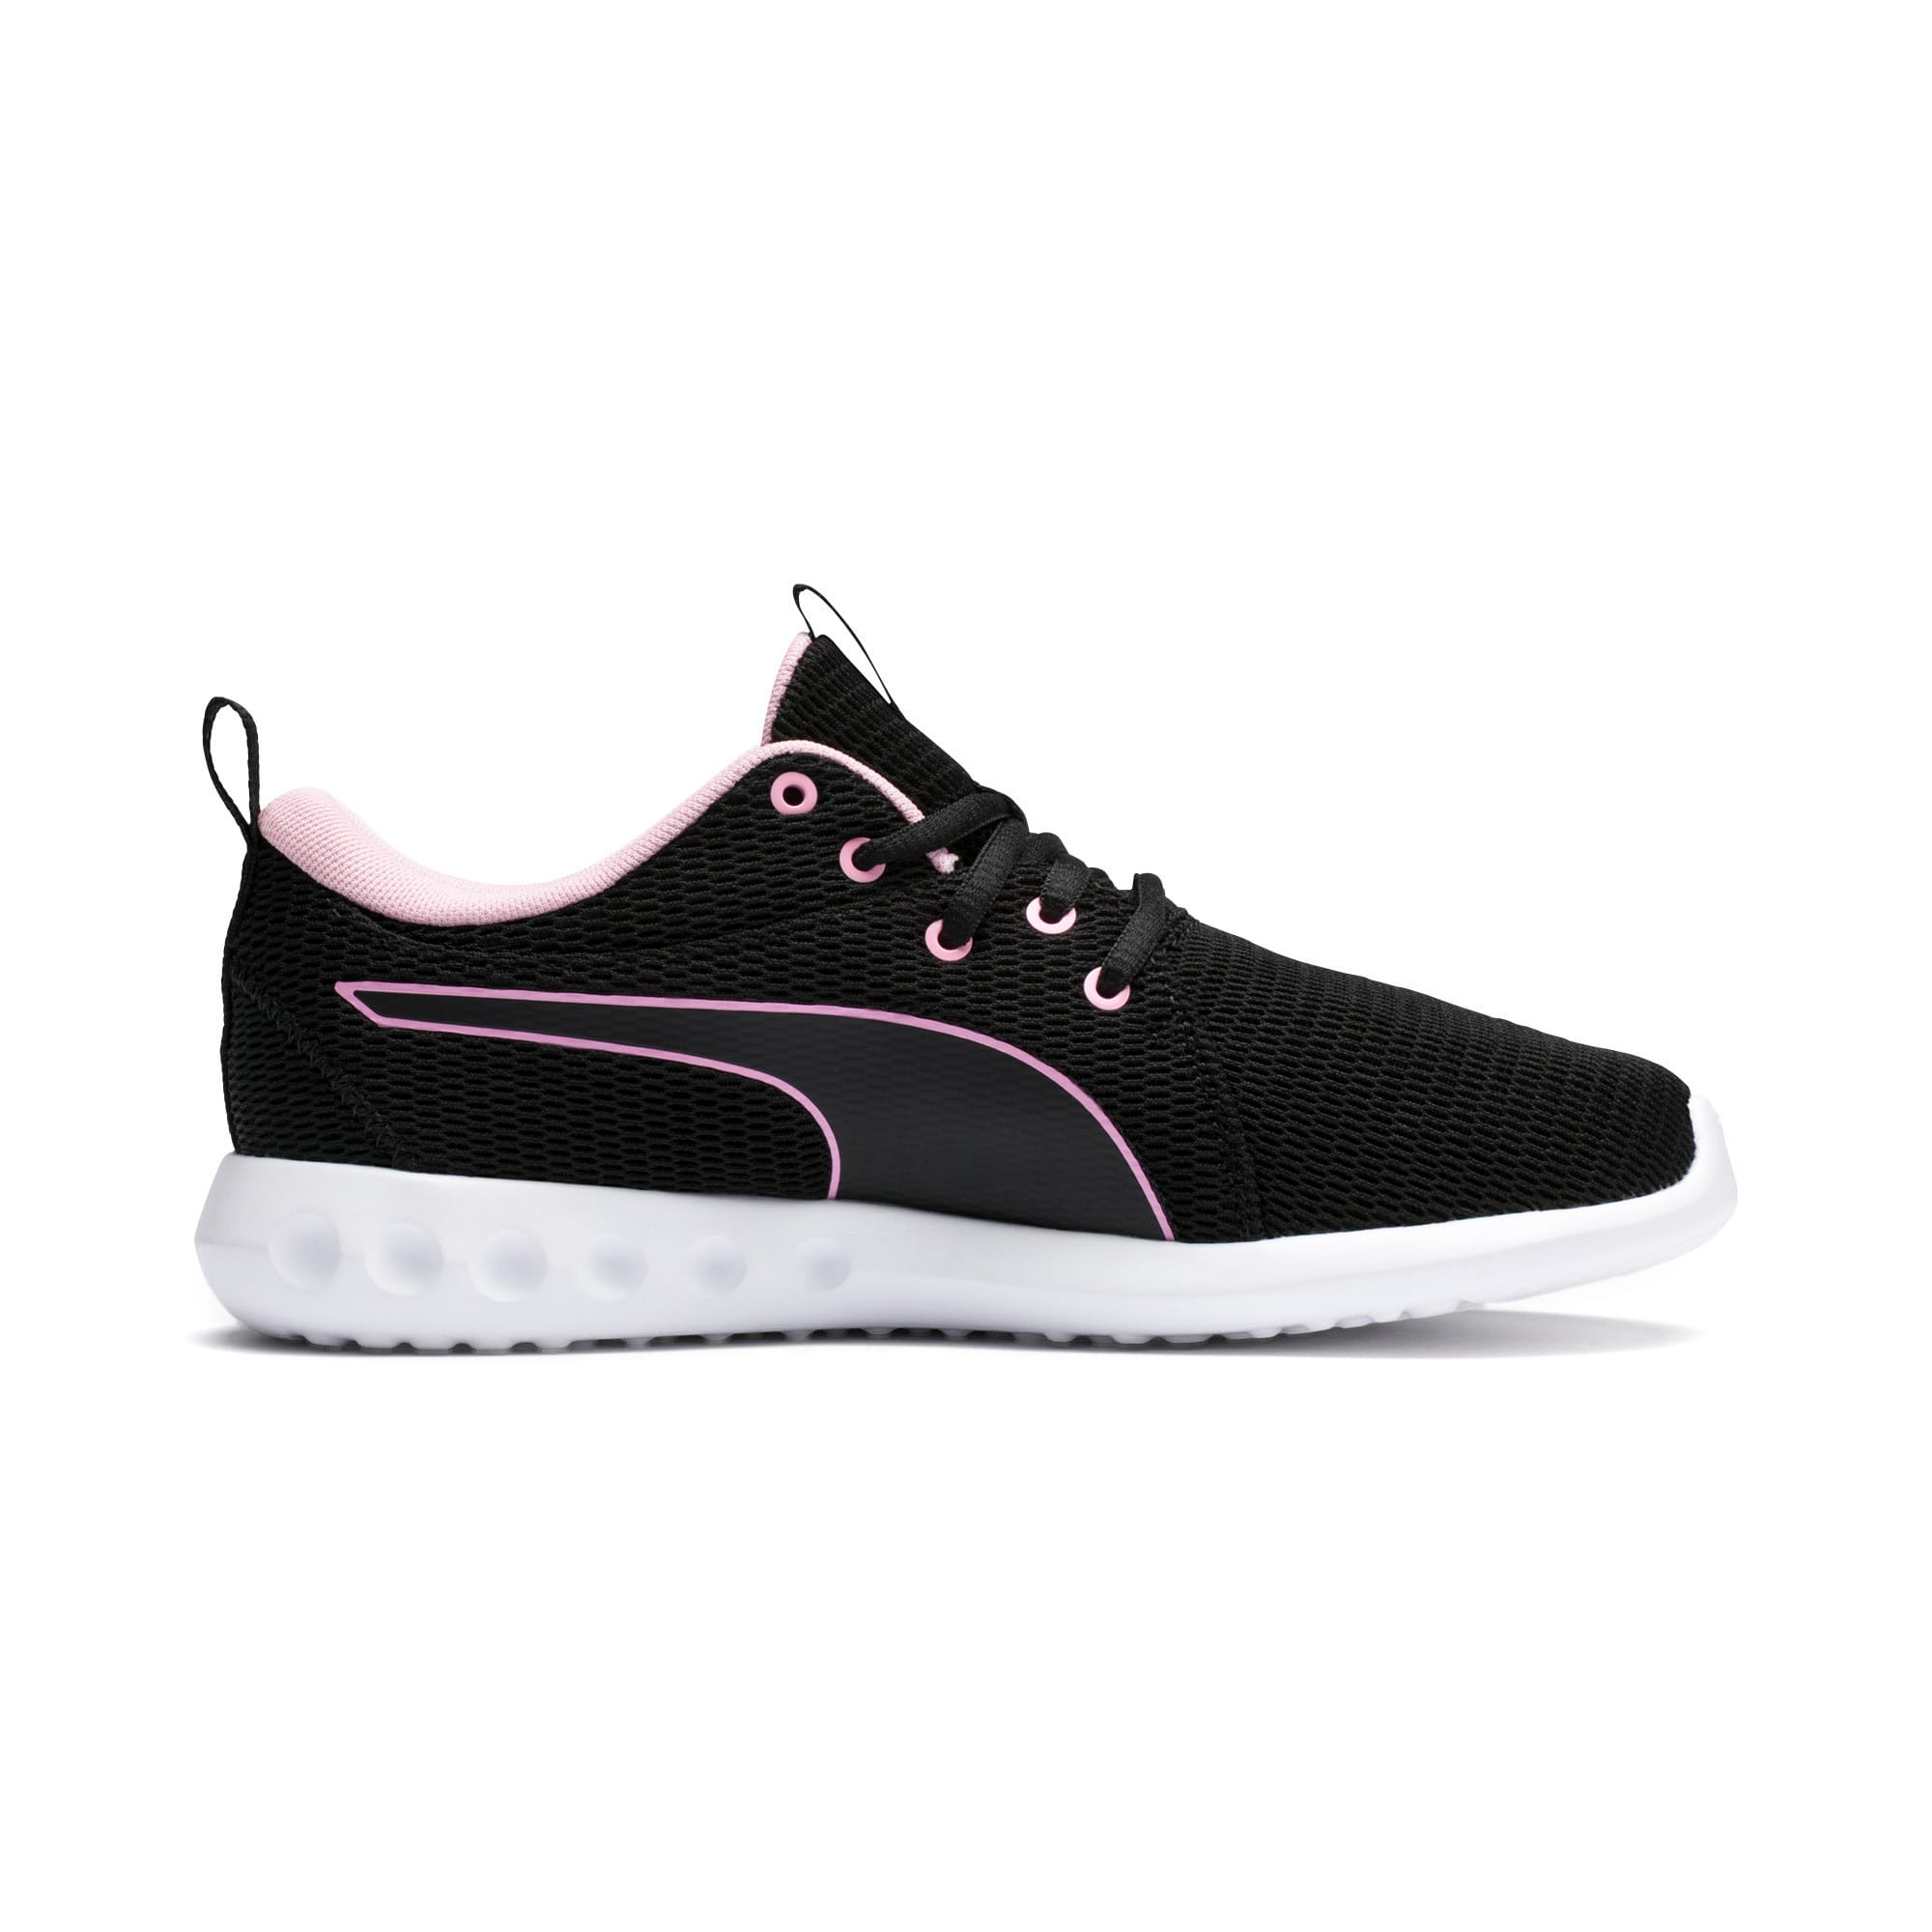 Thumbnail 5 of Carson 2 New Core Women's Trainers, Puma Black-Pale Pink, medium